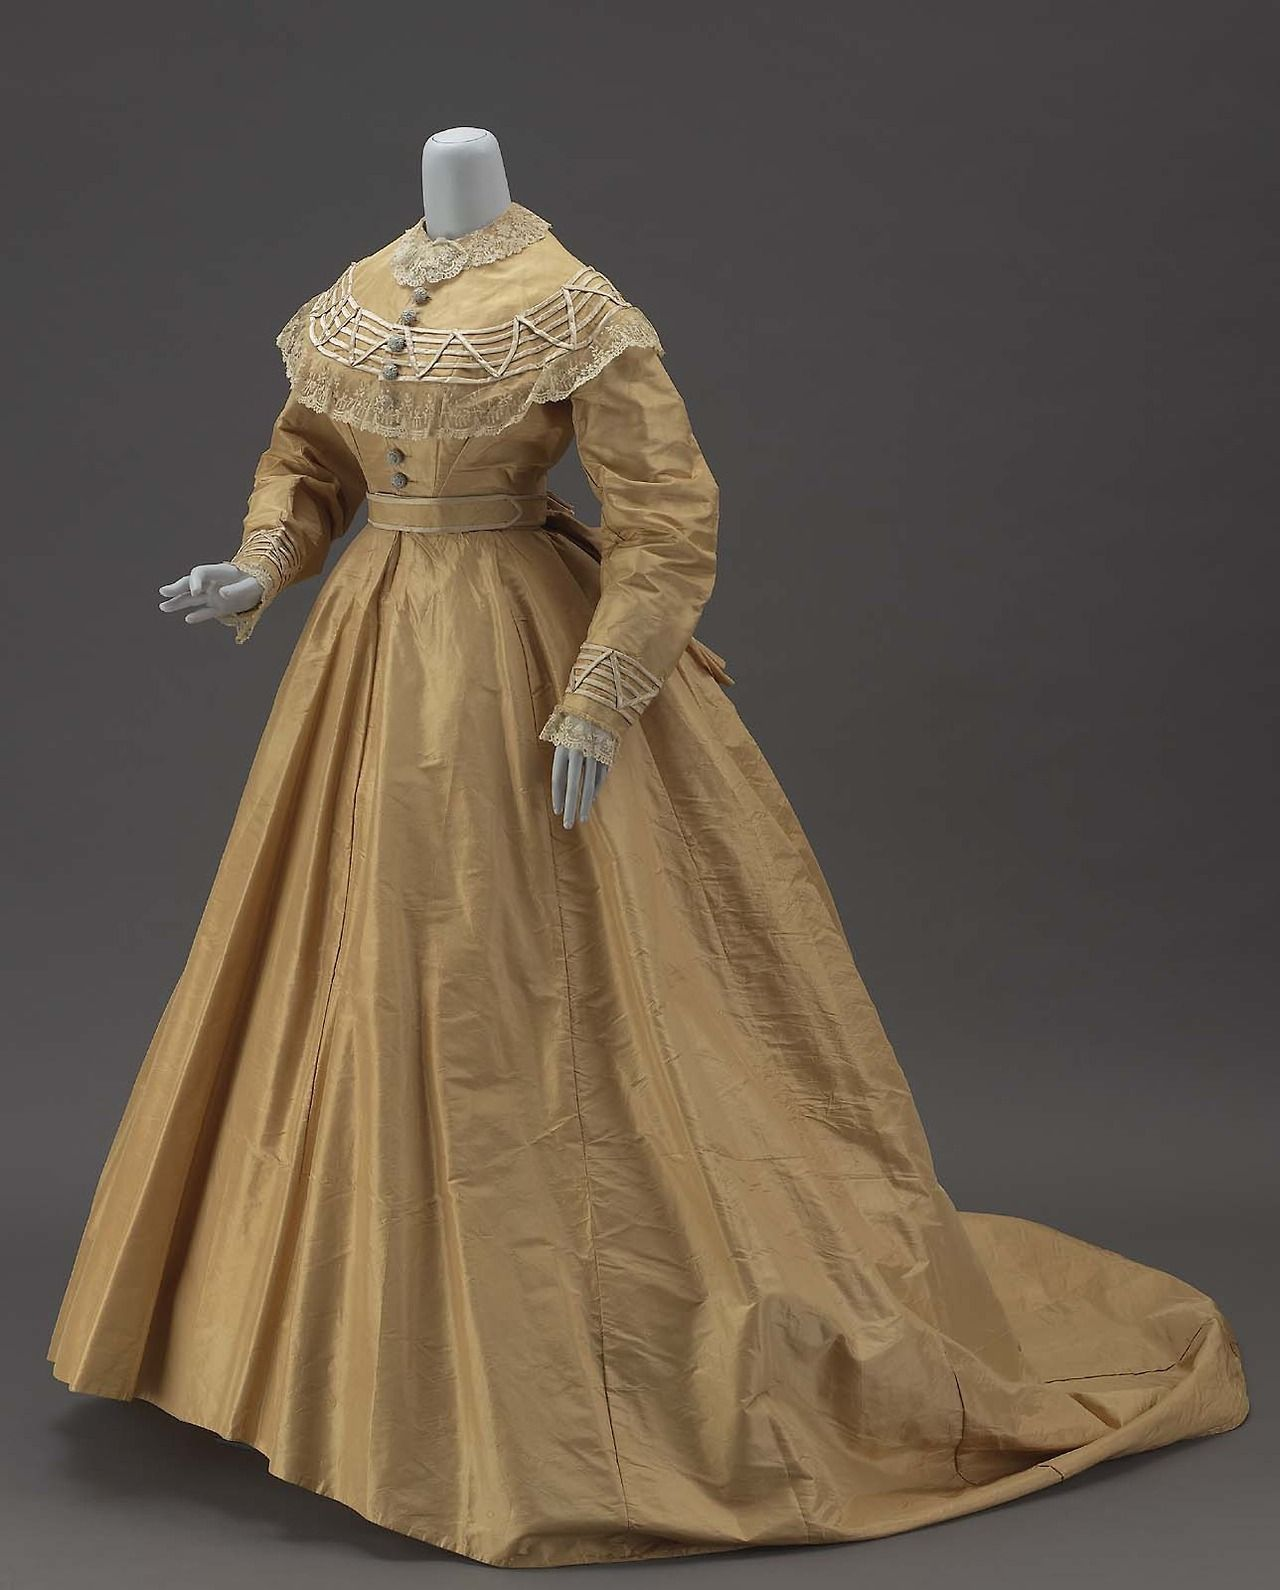 Fashions From History | Old fashioned dresses | Pinterest | History ...